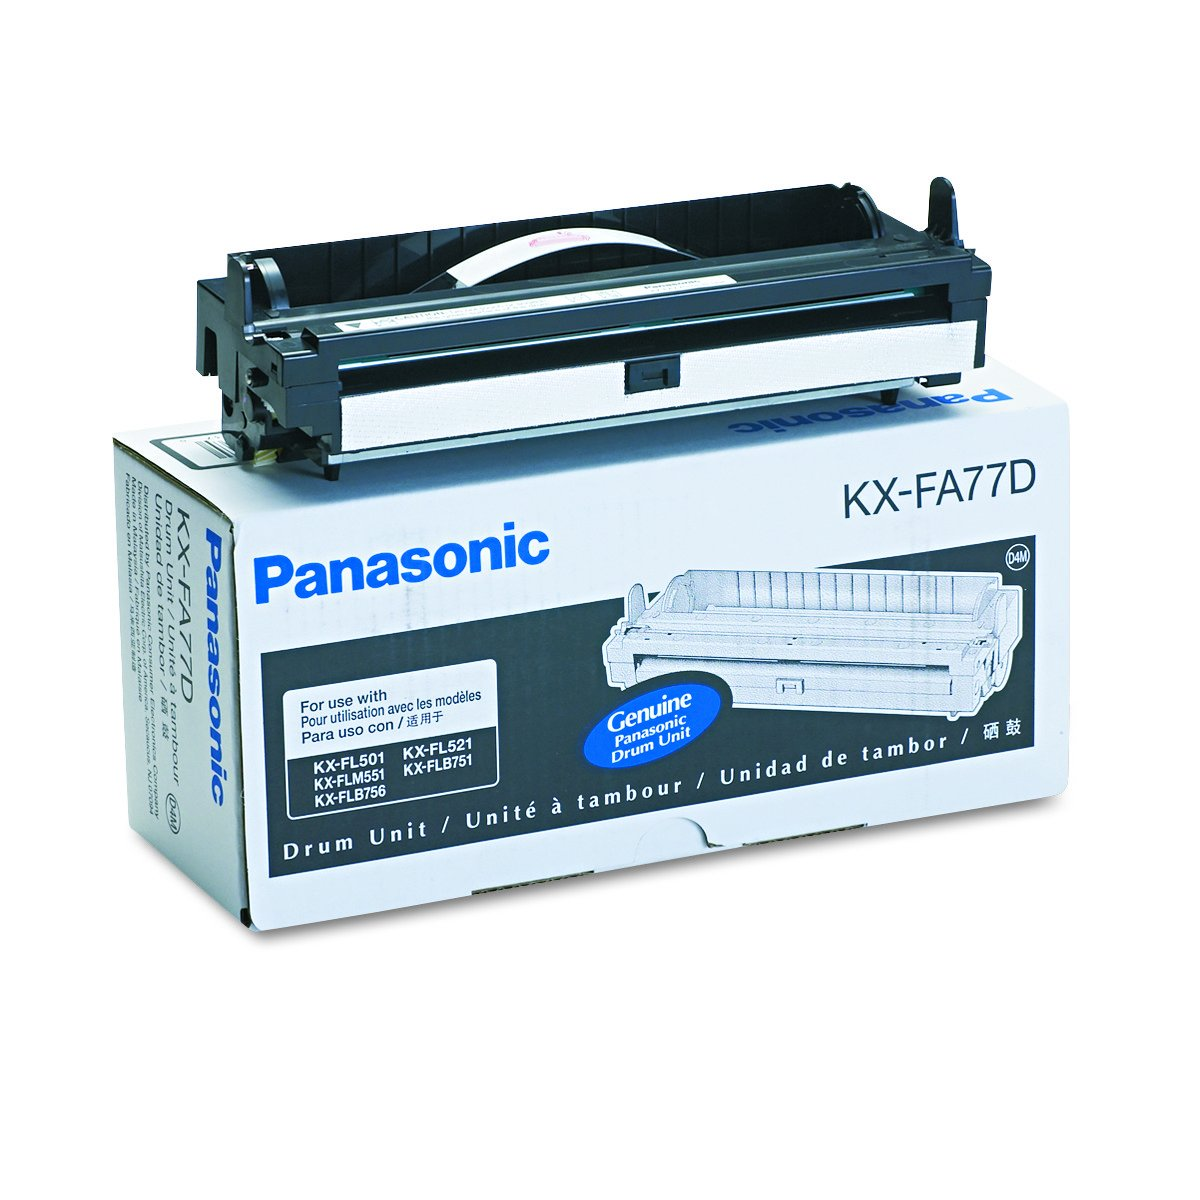 PANASONIC KX-FA77D Drum cartridge for panasonic fax kx-fl501, flm551